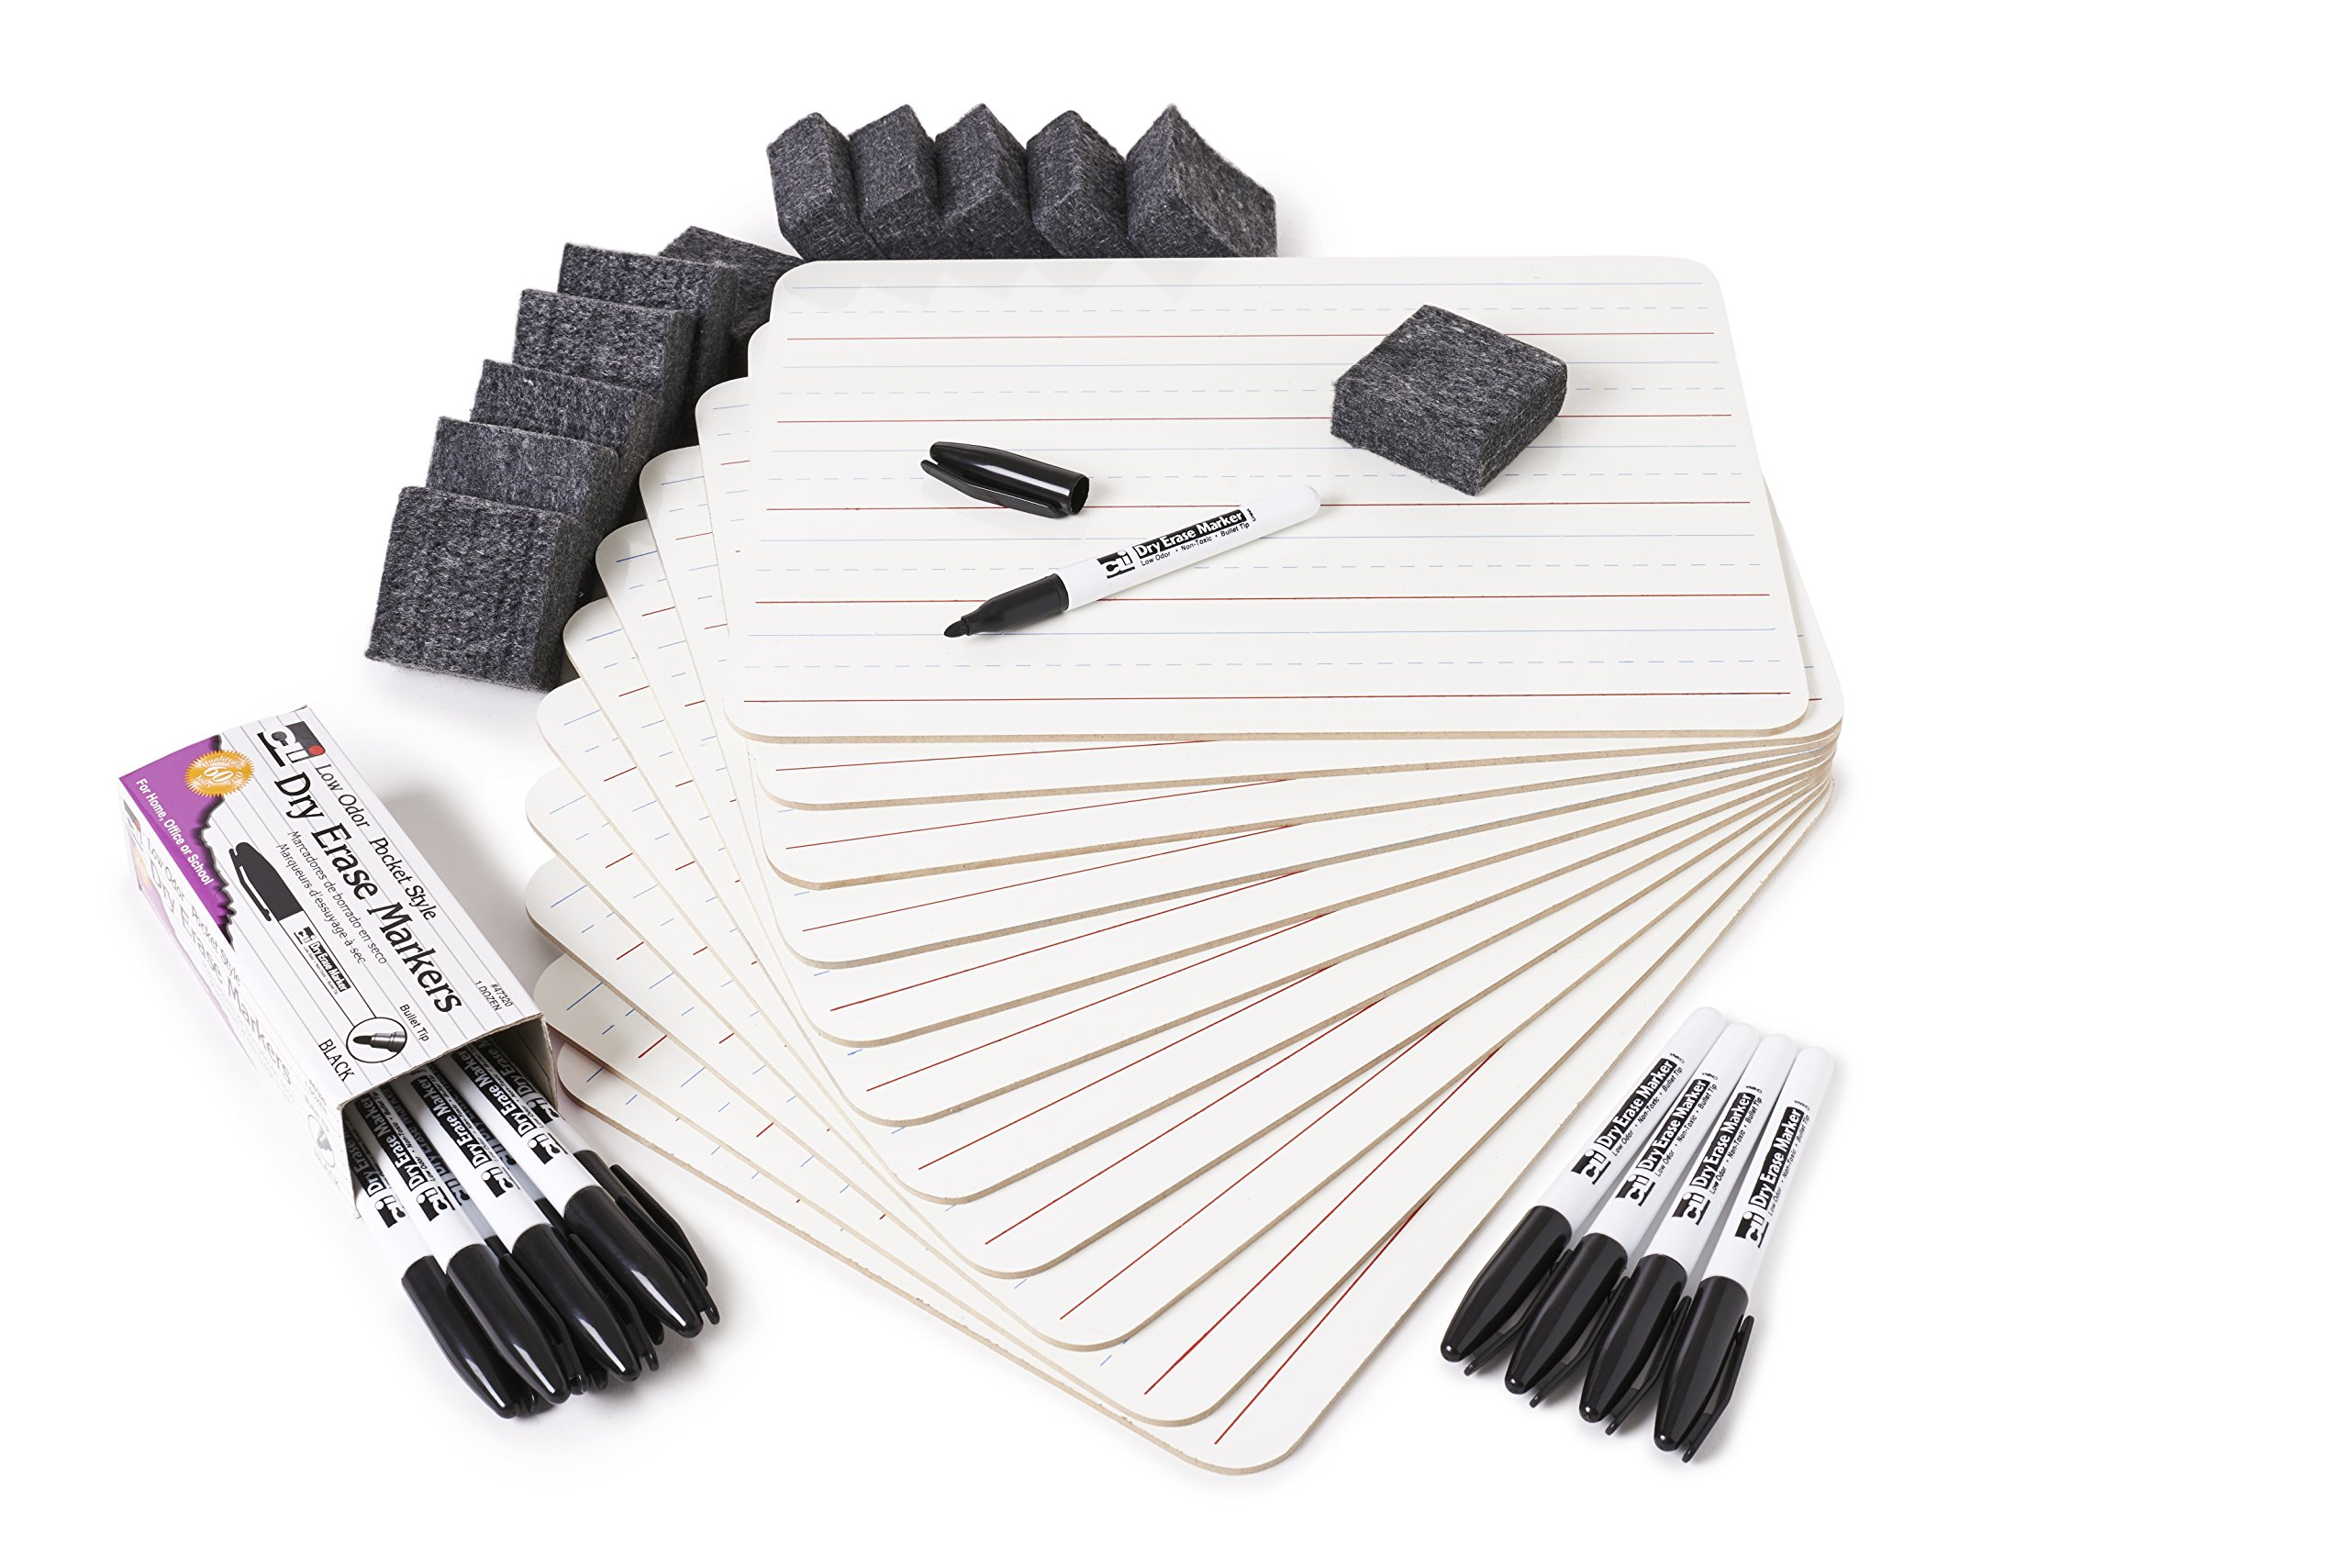 Charles Leonard Dry Erase Board Class Pack, Includes 12 Plain/Lined 2-Sided Boards, 12 Erasers and 12 Black Markers, 1 Class Pack per Box (35030)